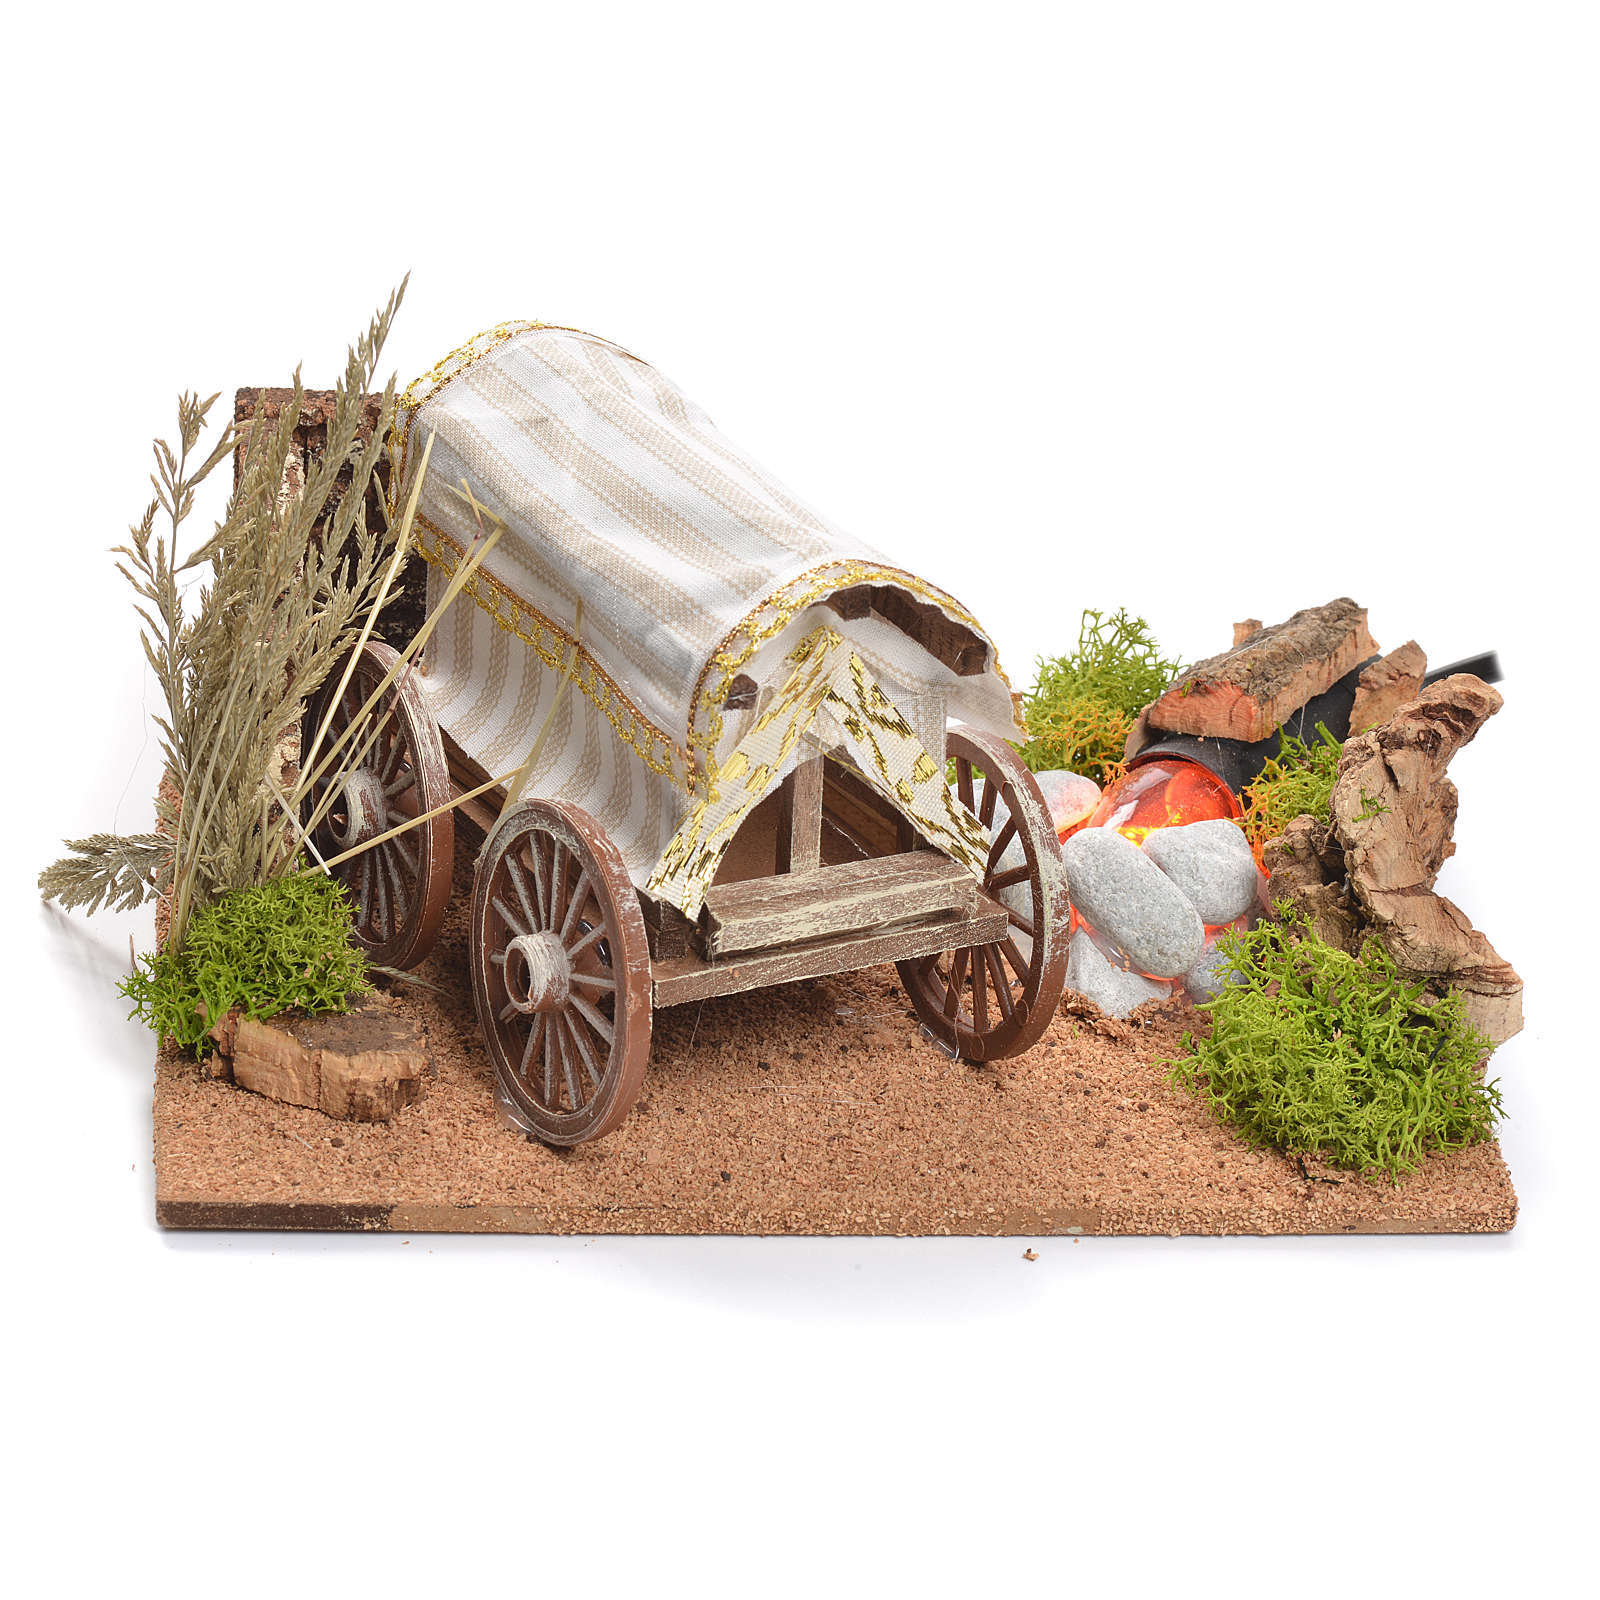 Bandwagon with fire for nativity scene, measuring 22x26x40cm 4